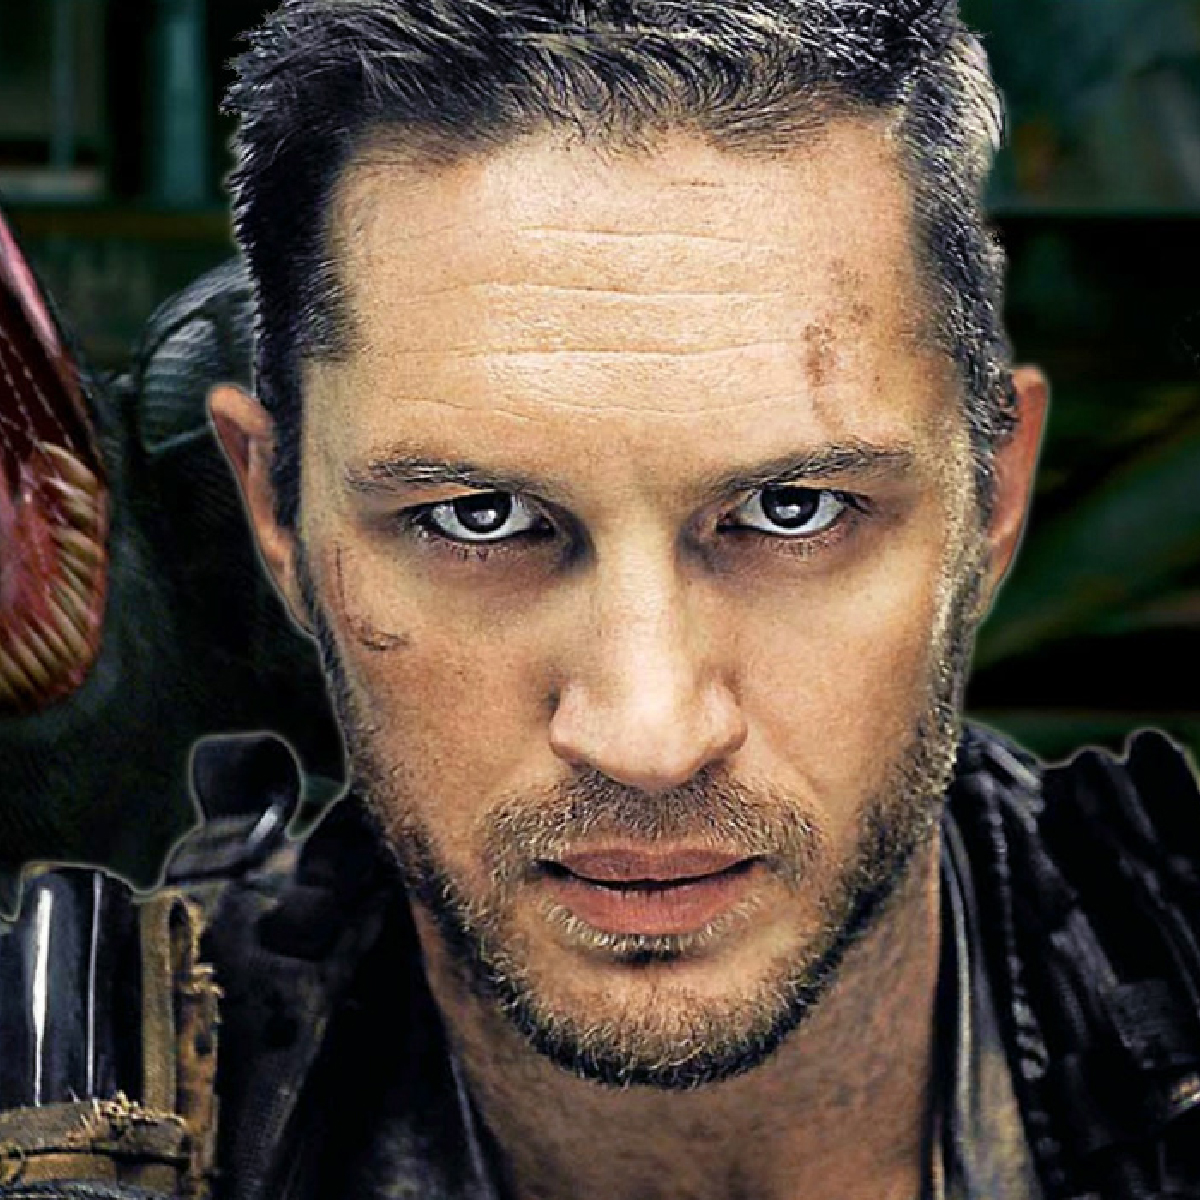 Tom-Hardy-Venom-hairstyle-credit-Sony-Pictures